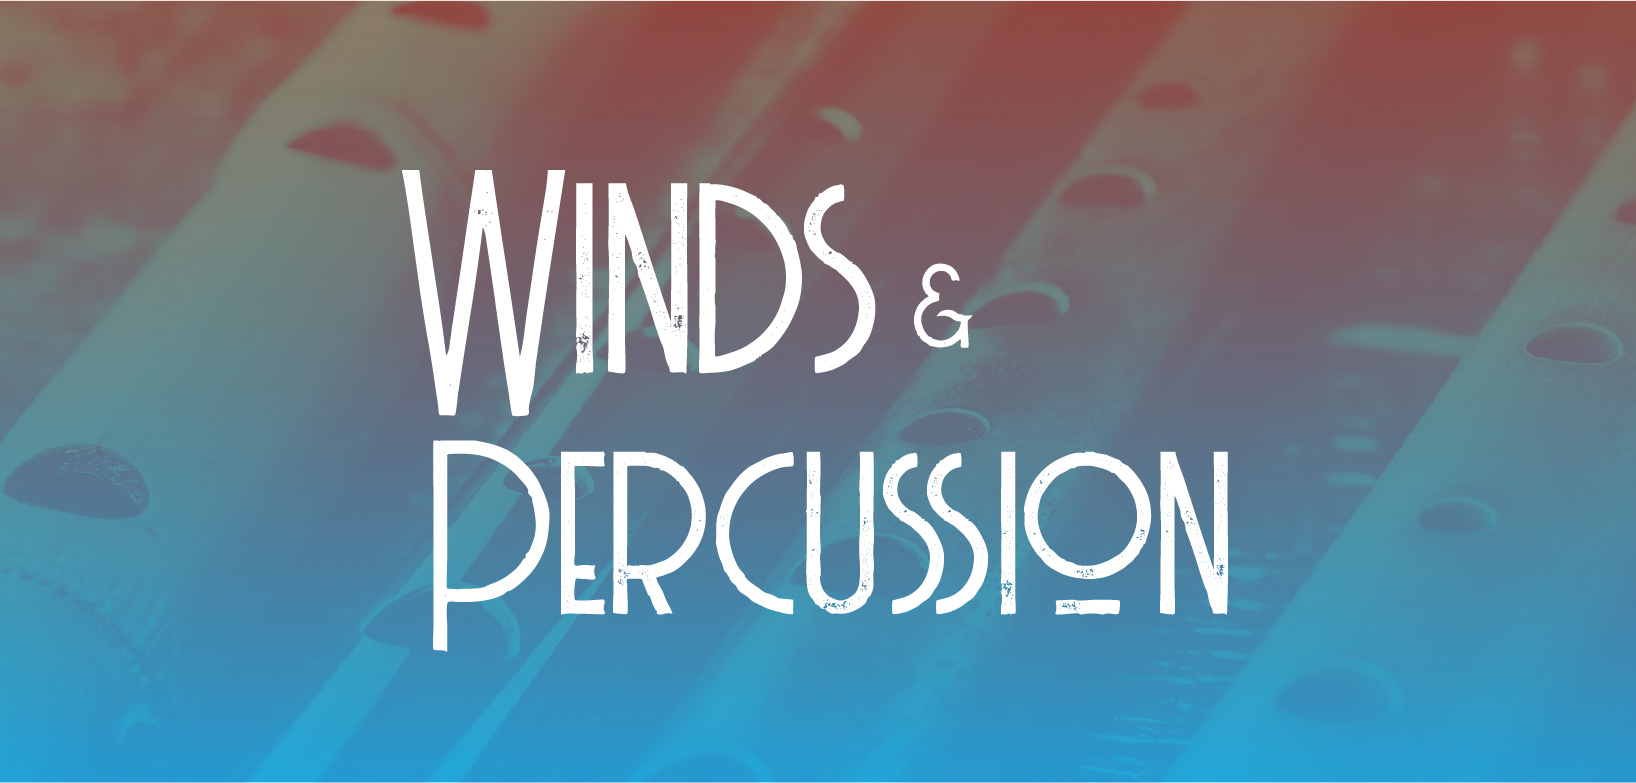 Text reads: Winds & Percussion